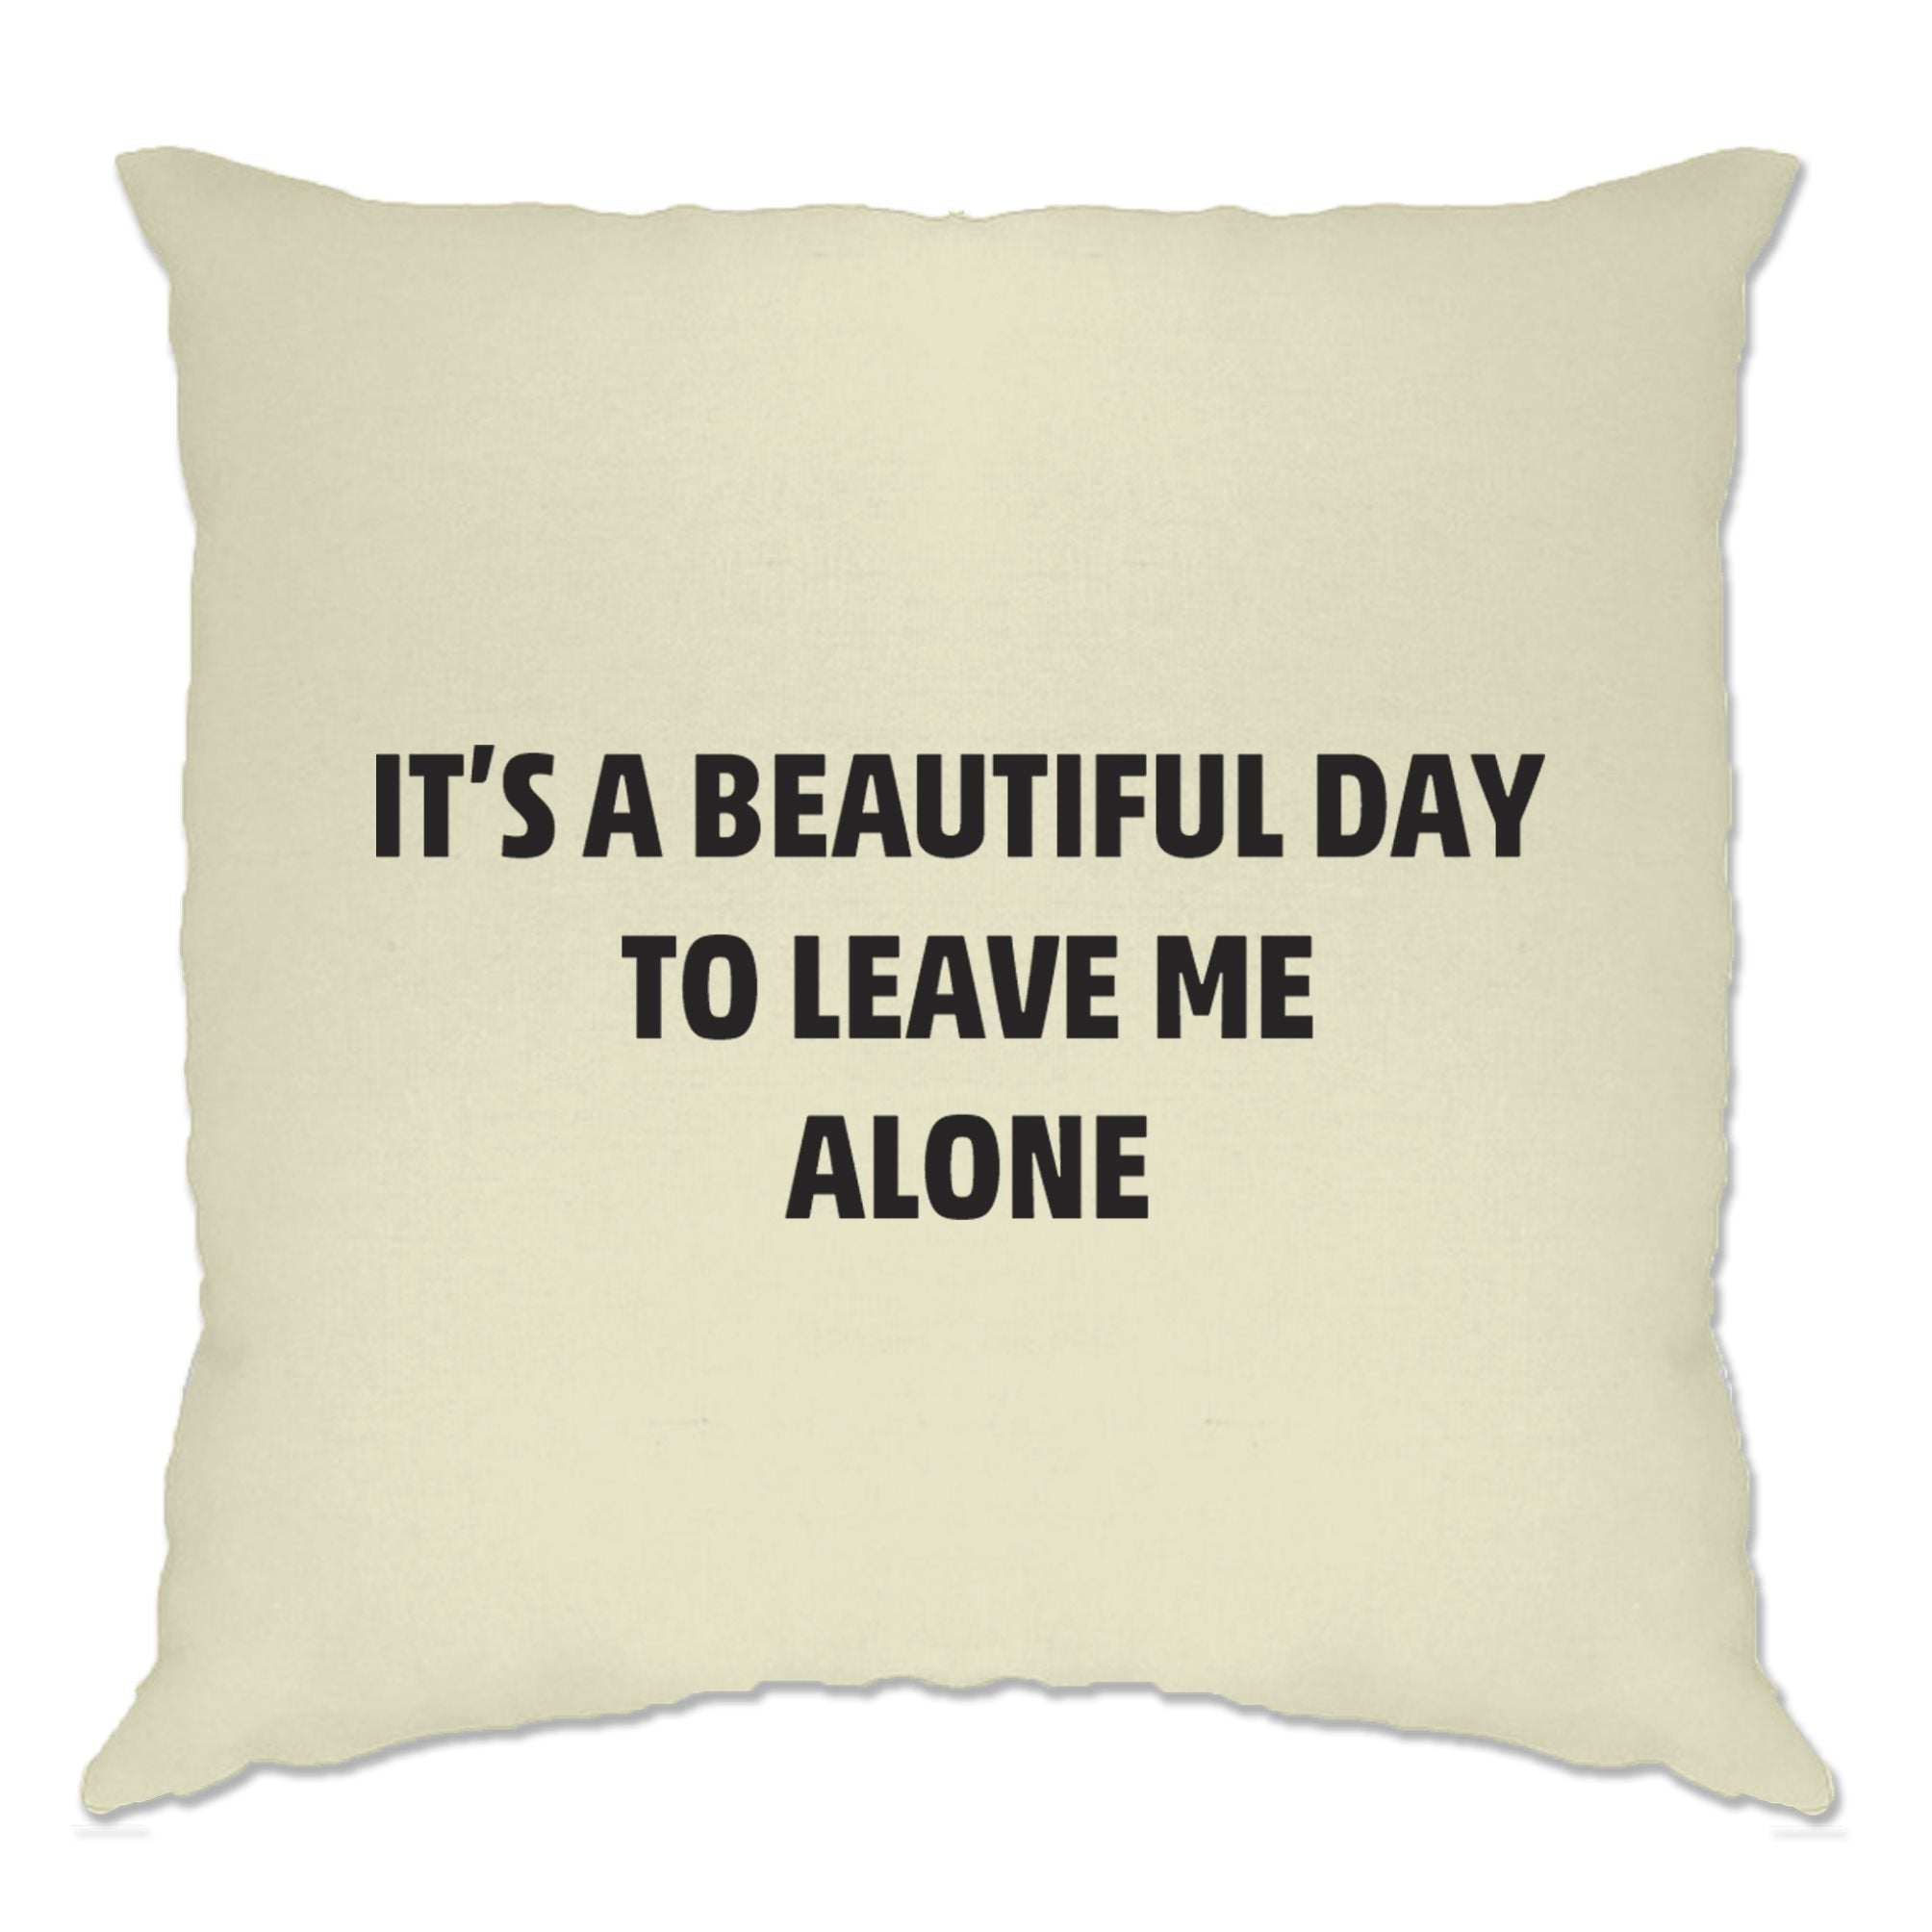 Joke Cushion Cover It's A Beautiful Day To Leave Me Alone